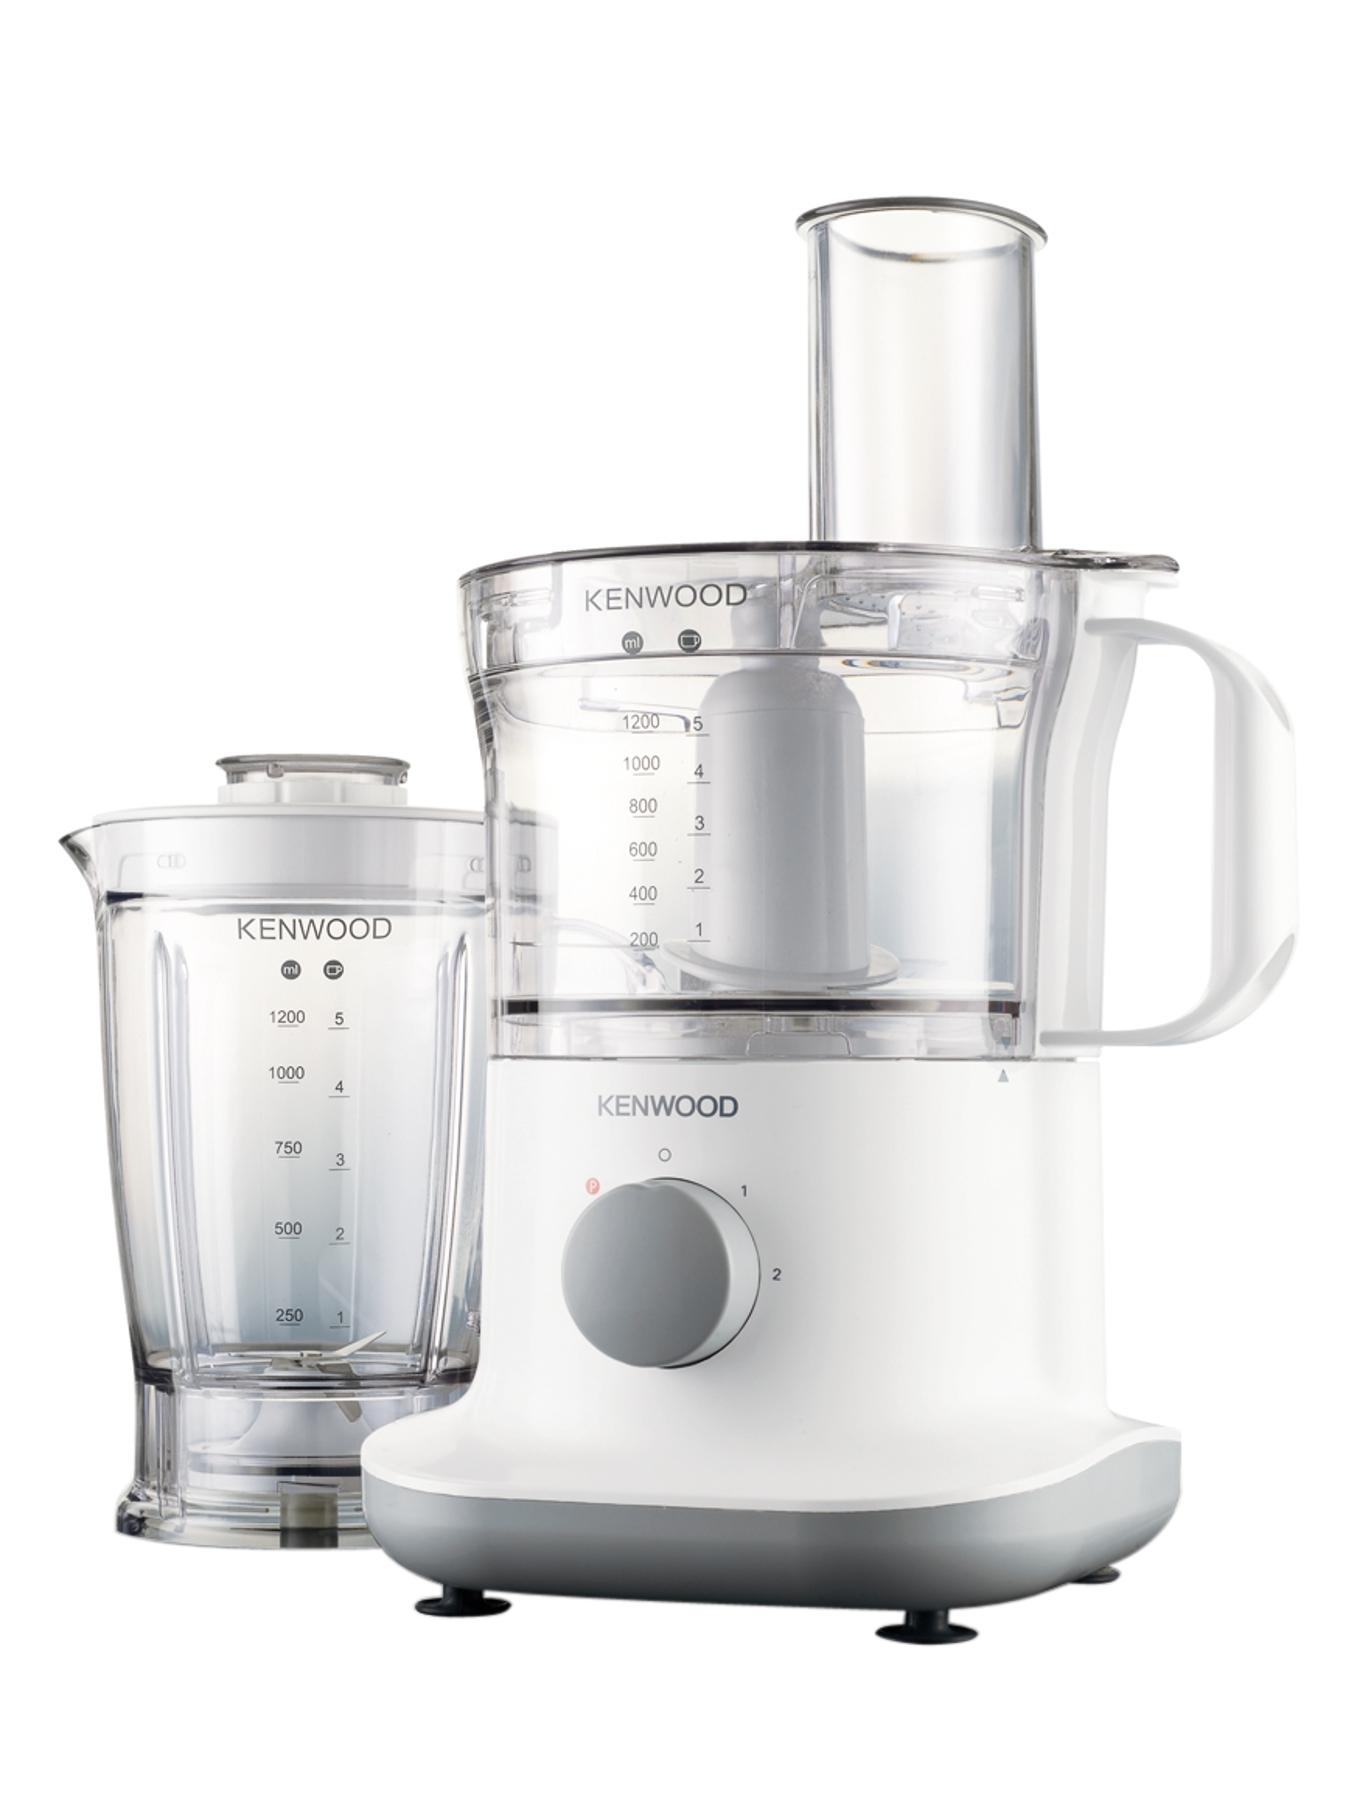 Rico Fp 101 Food Processor Review Kenwood Food Processor